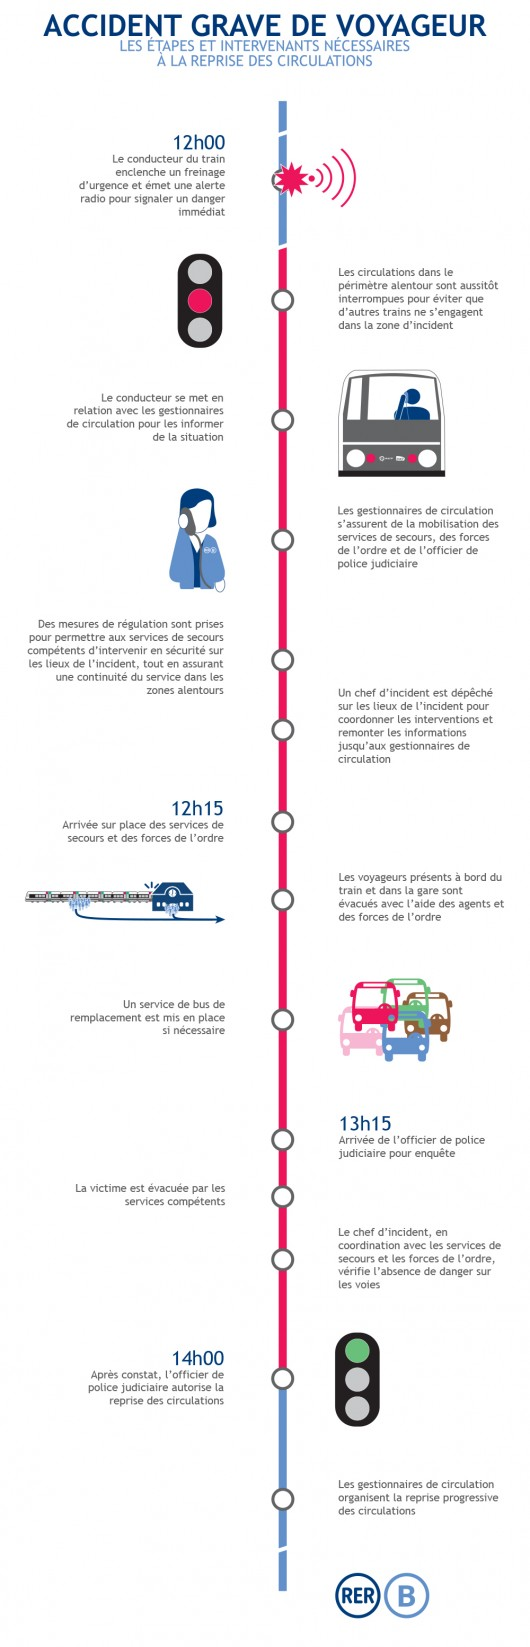 infographie RER B accident grave